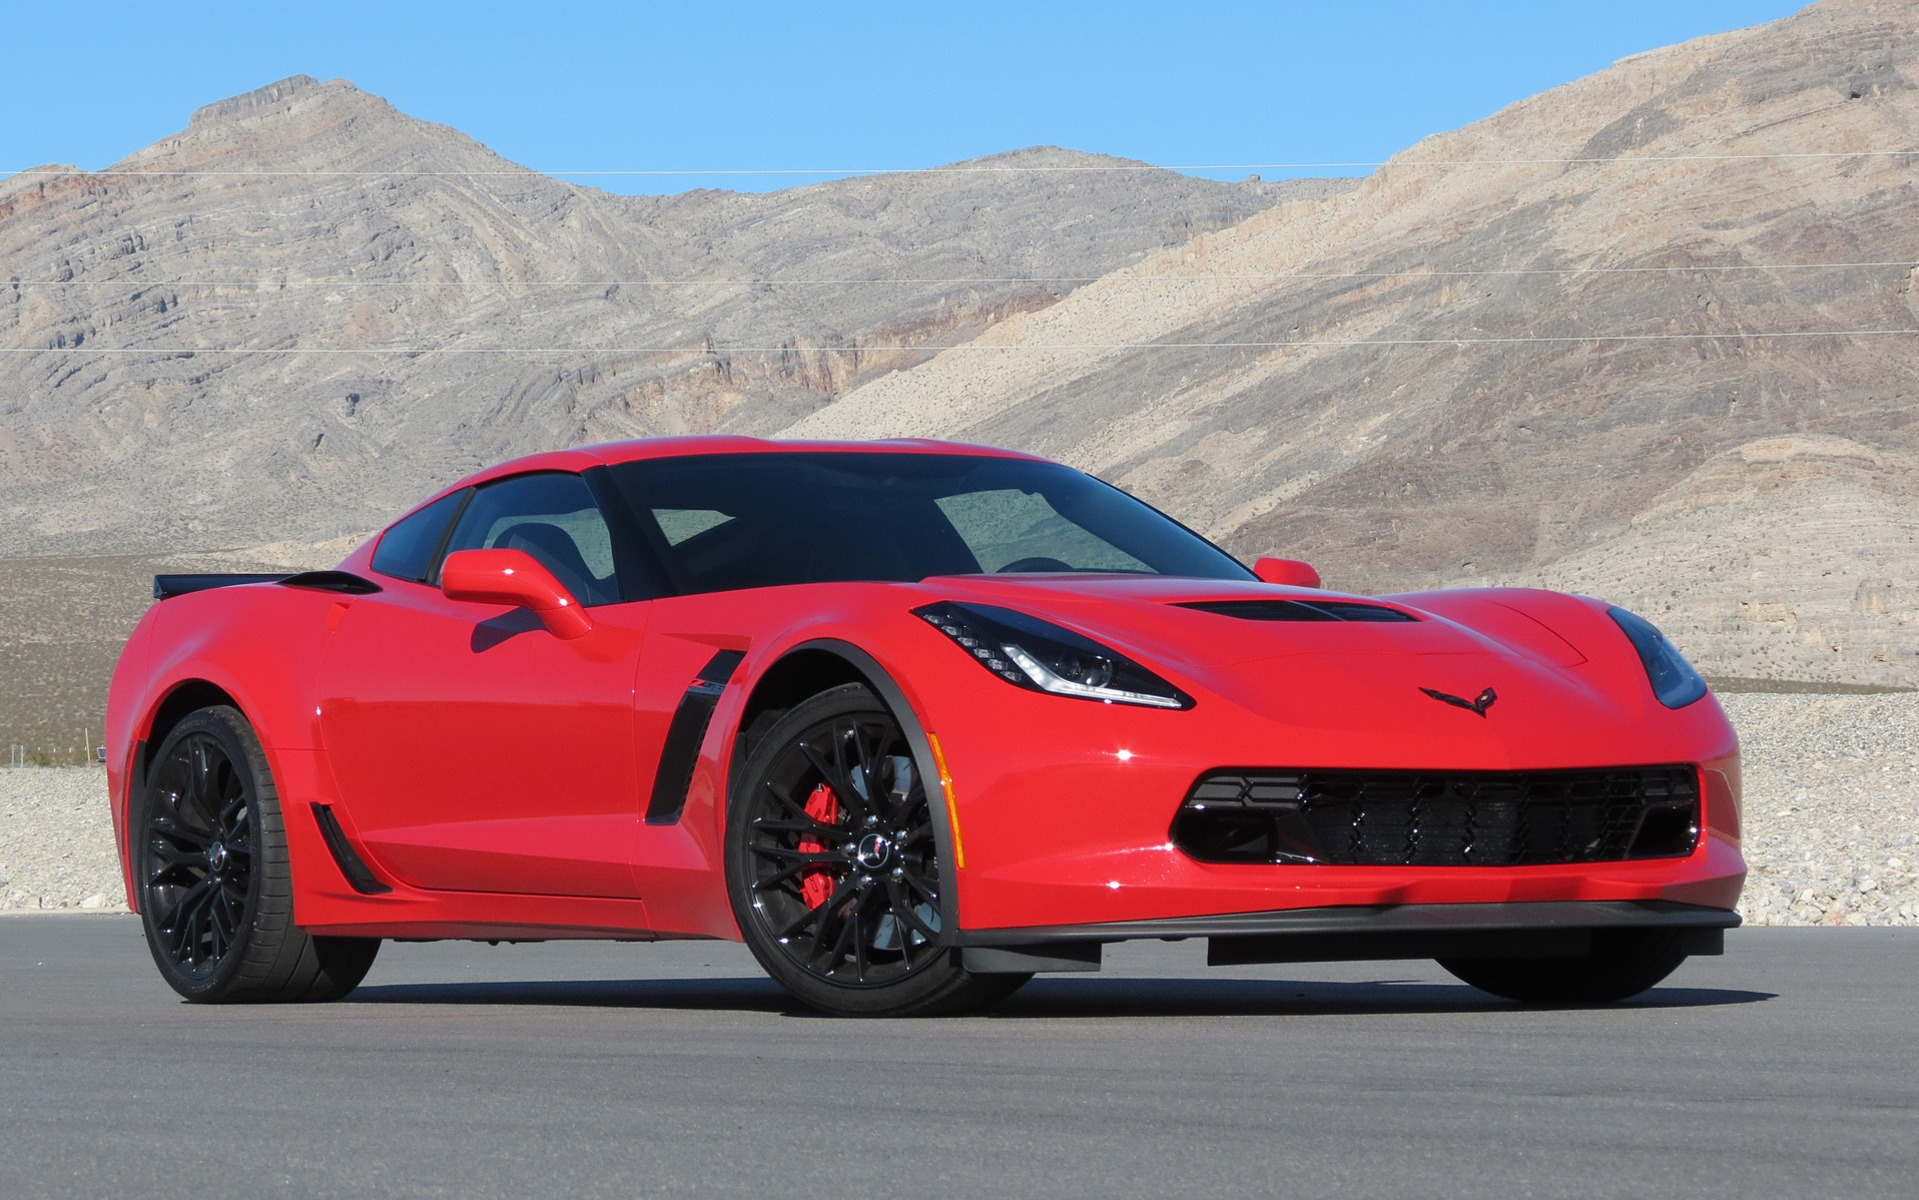 2015 chevrolet corvette z06 almost outruns its shadow review the. Cars Review. Best American Auto & Cars Review